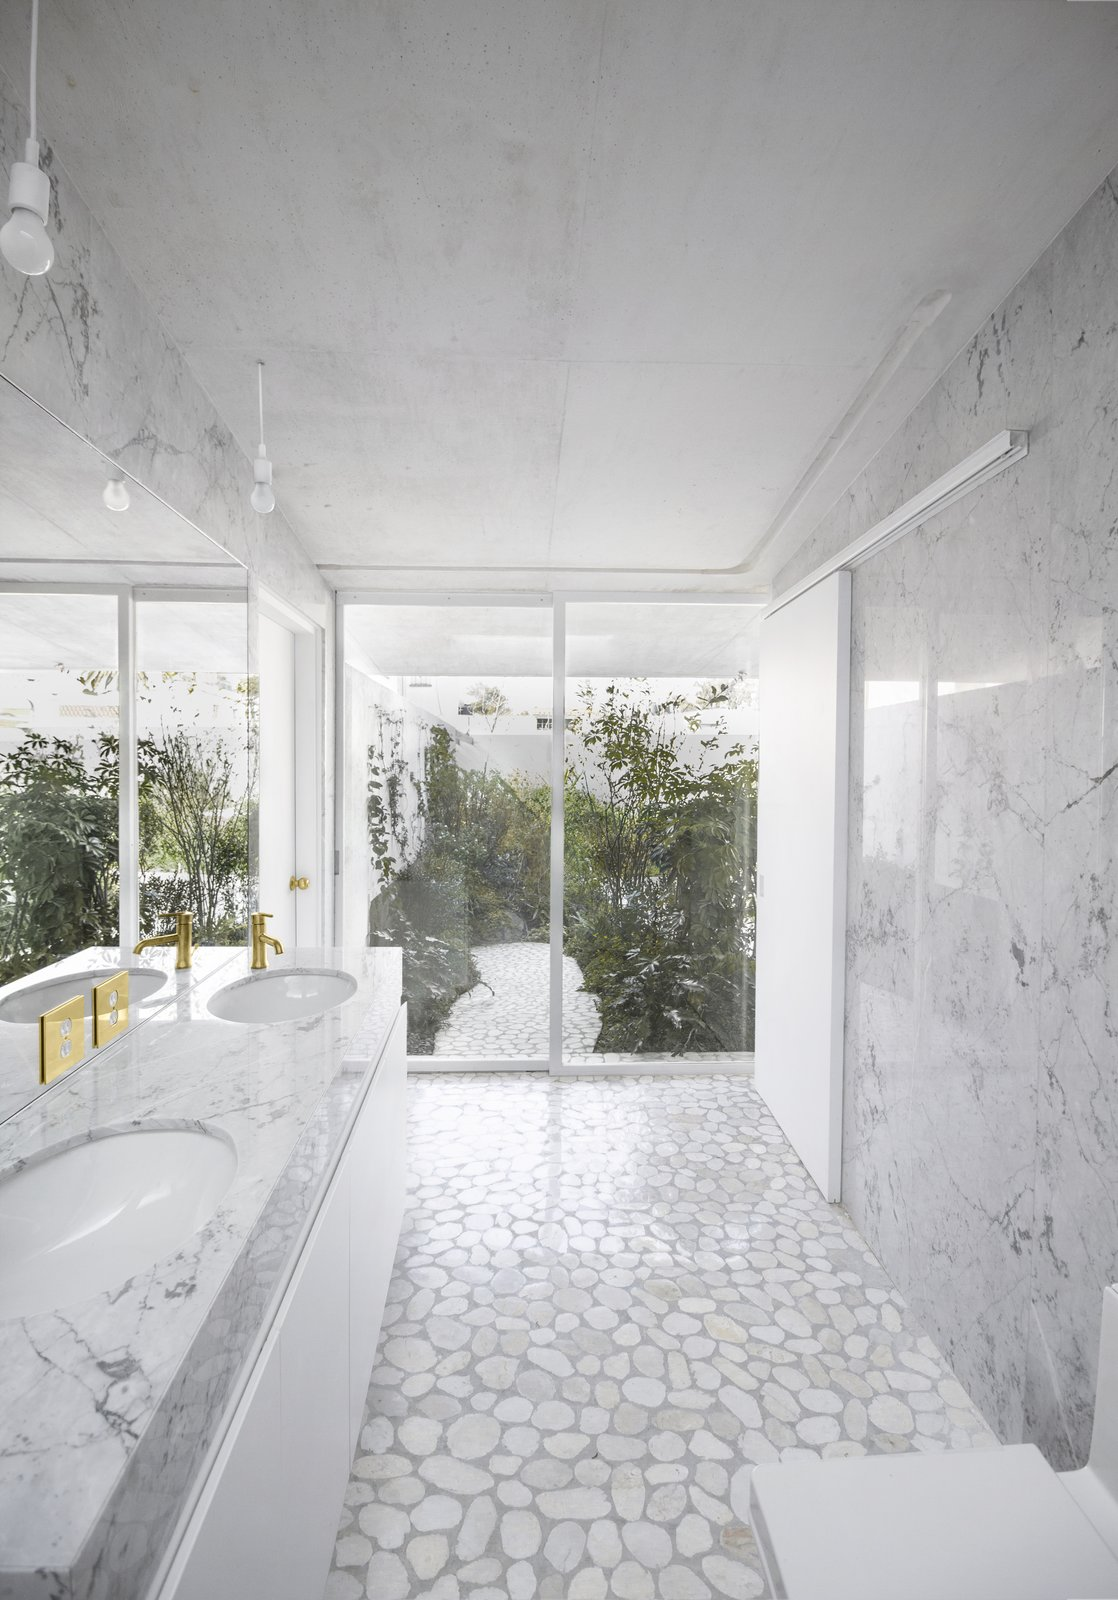 Bath, Marble, Travertine, Drop In, Drop In, Open, Ceiling, Pendant, Marble, and One Piece Bathroom  Best Bath Ceiling Travertine Marble Drop In Photos from Casa Verne